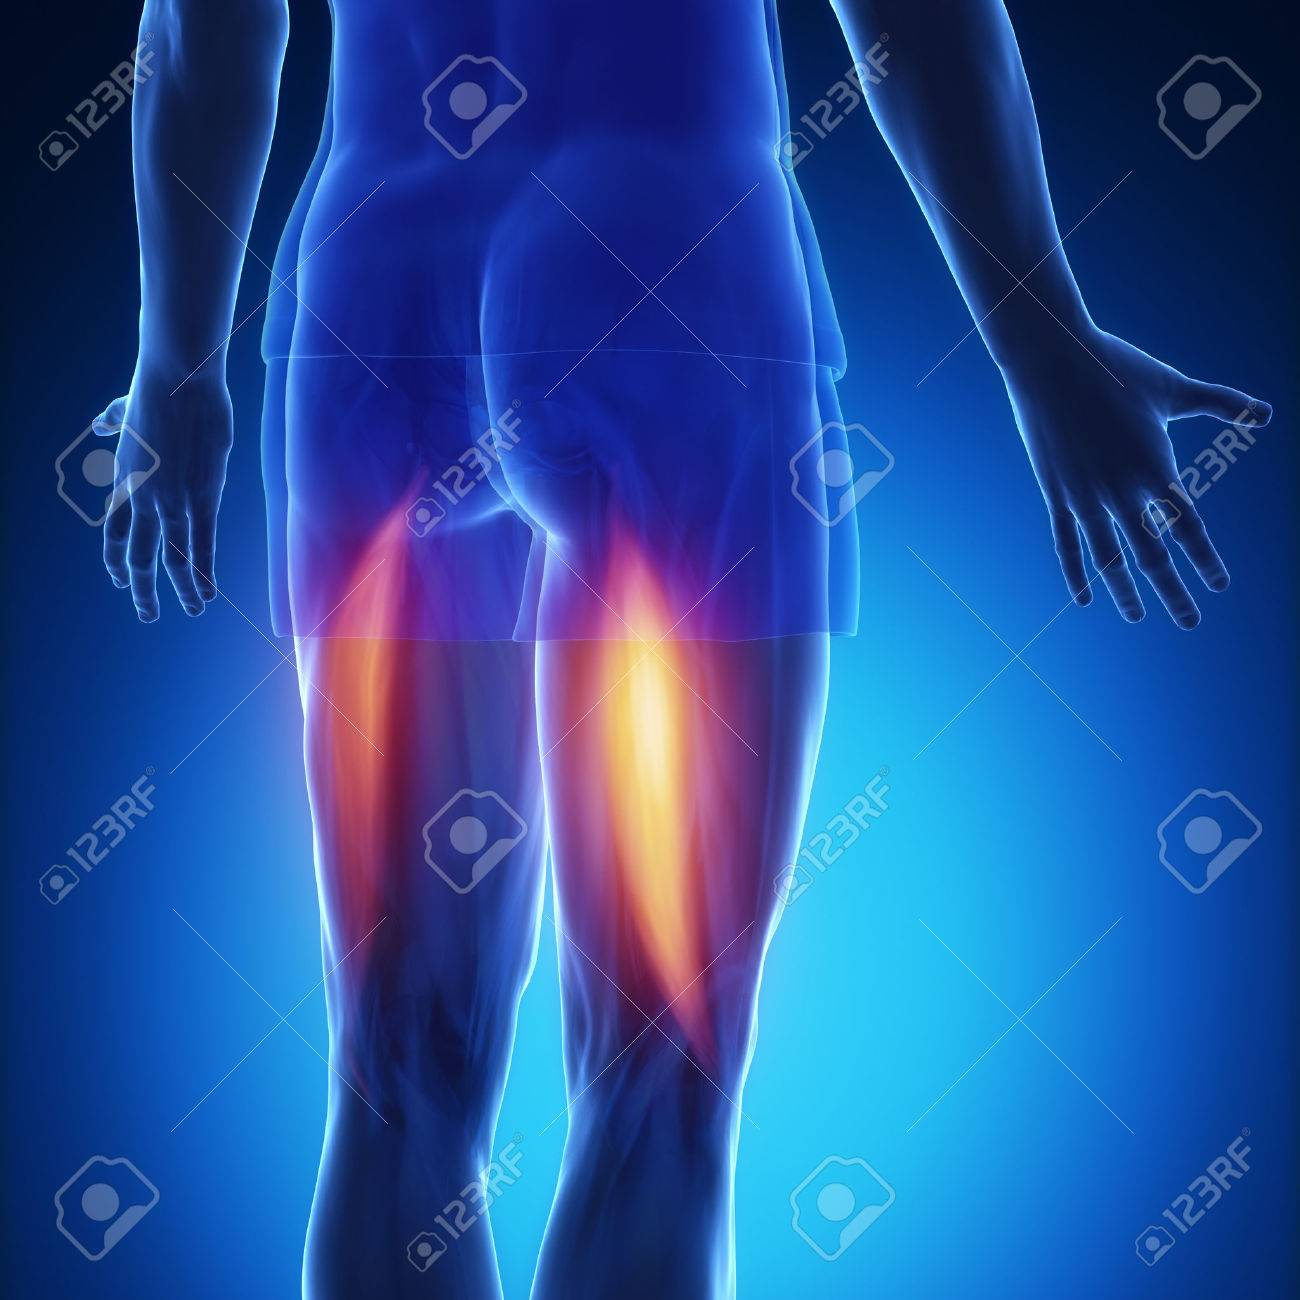 Bicep Femoris Muscle Anatomy Stock Photo Picture And Royalty Free